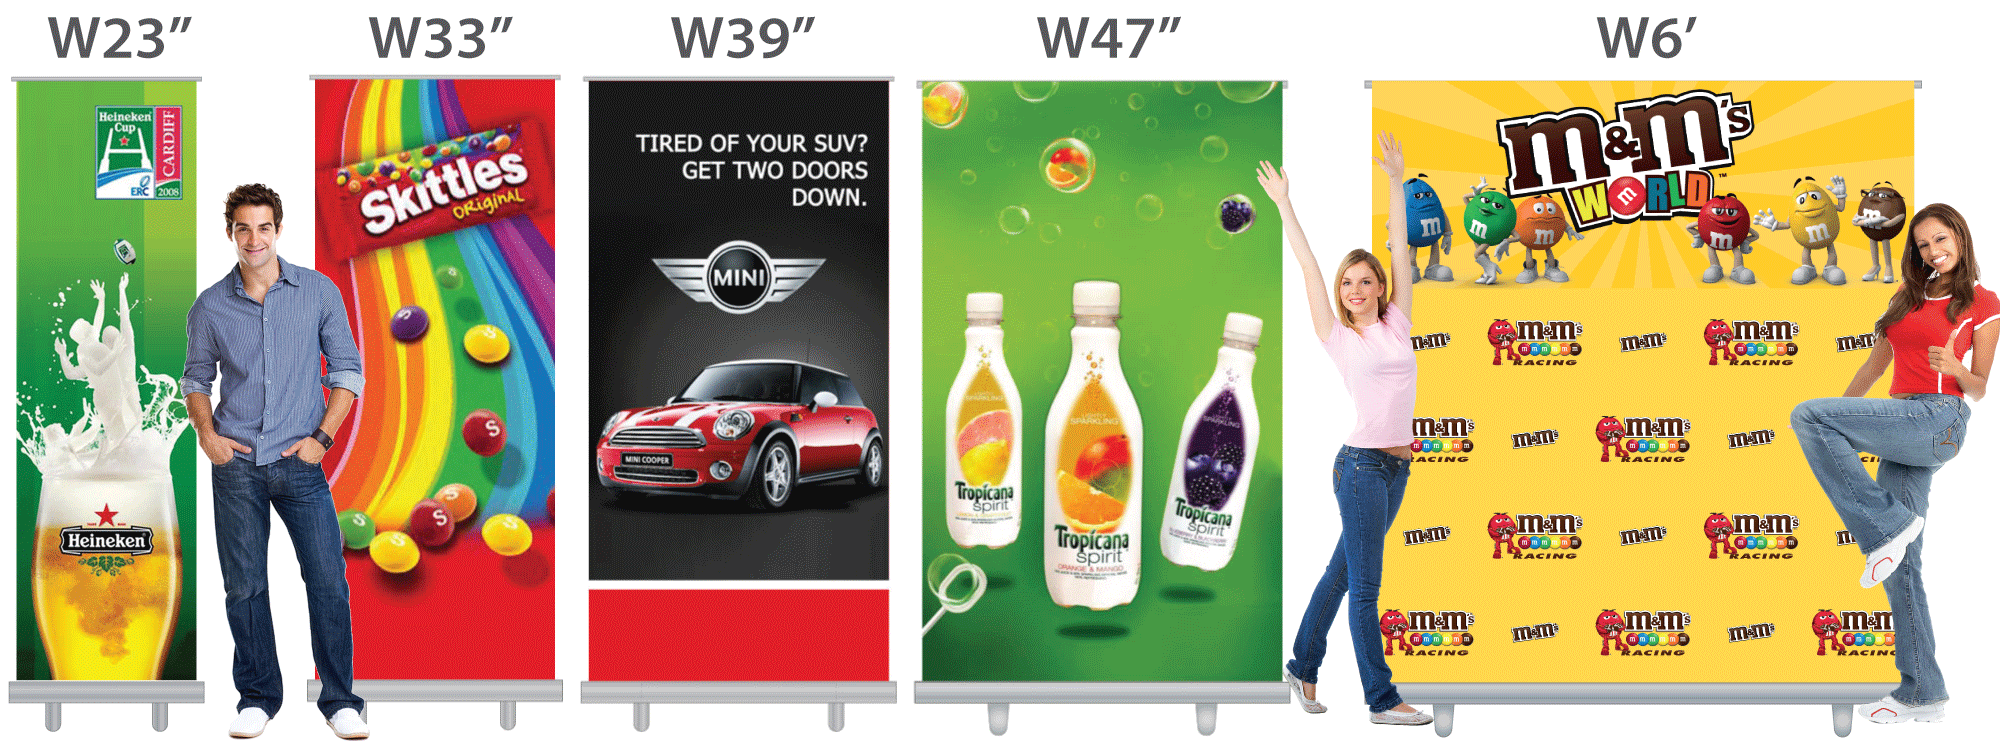 Retractable Banners Sizes - Chart